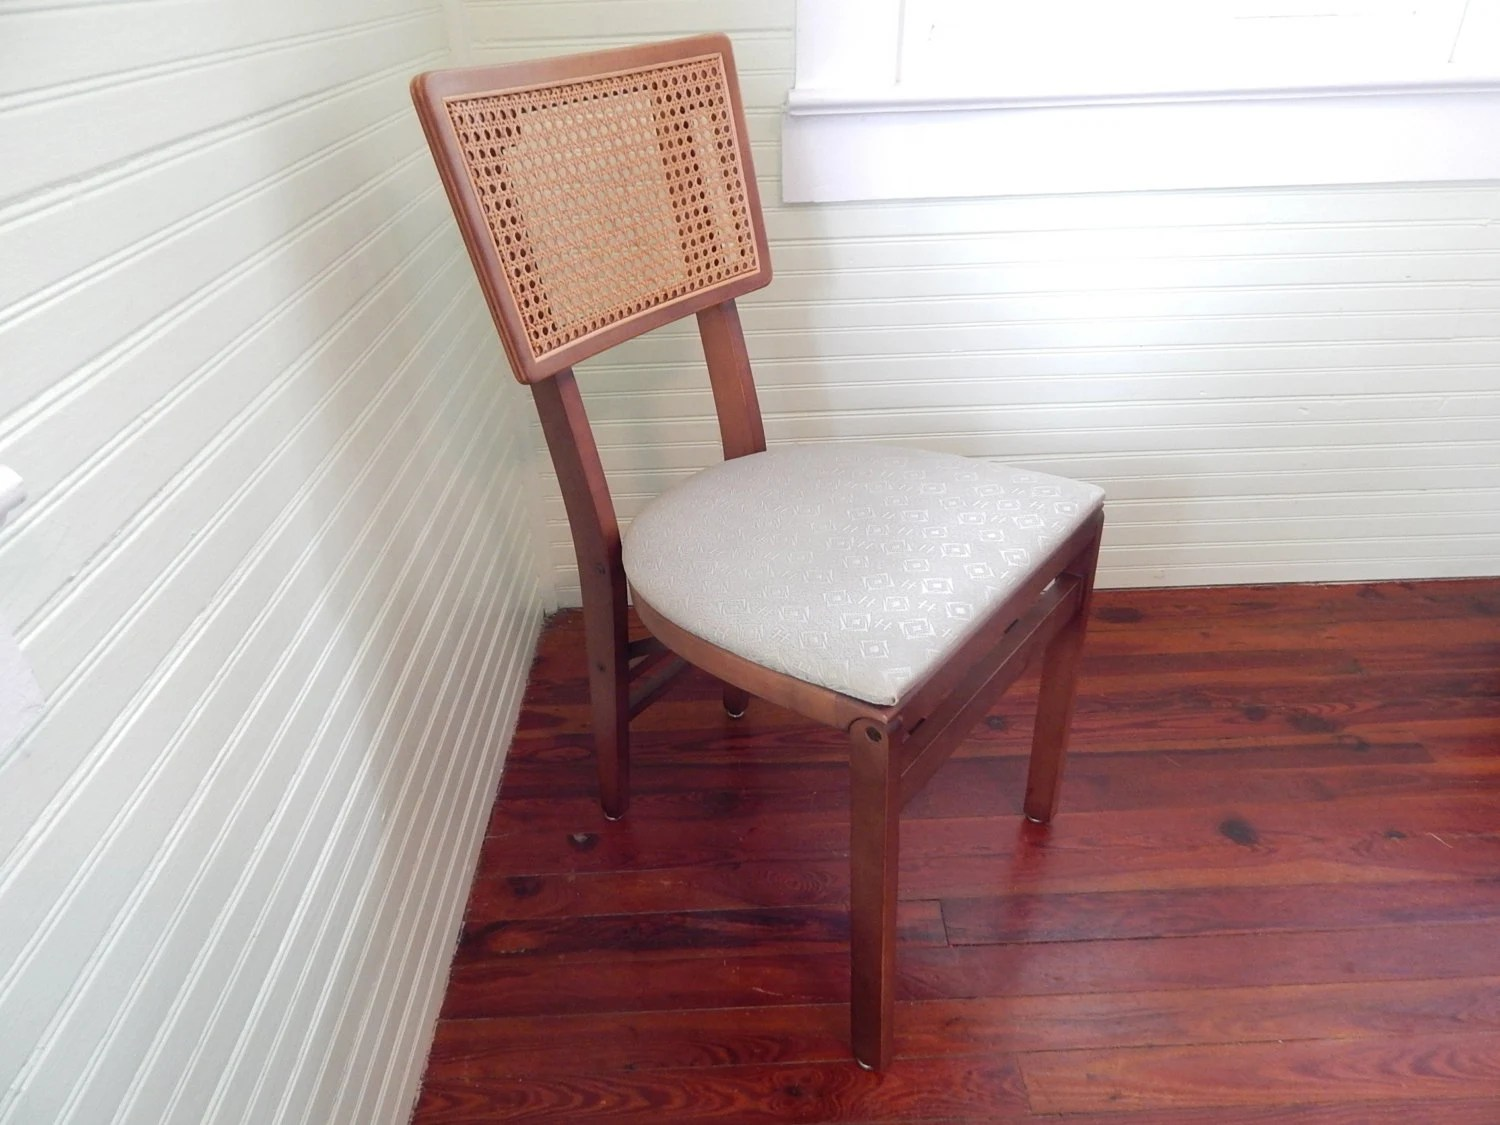 Stakmore Folding Chair Handsome Folding Chair By Stakmore Sturdy Mid Century